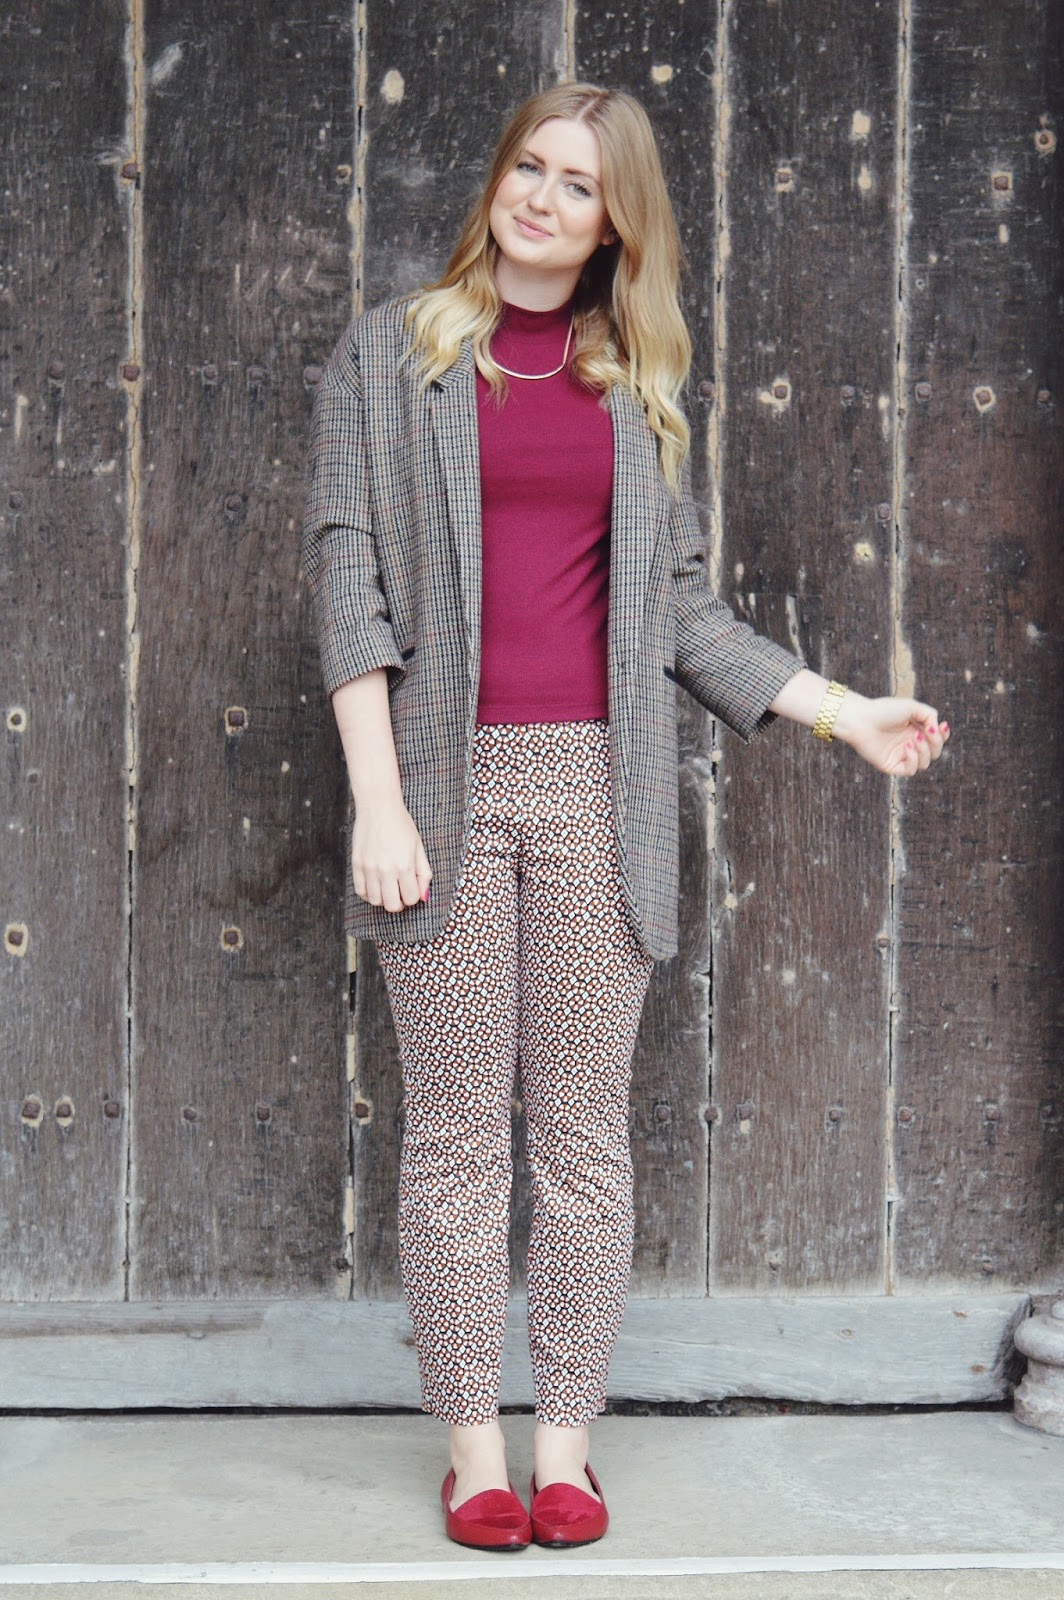 H&M printed trousers, FashionFake, fashion bloggers, Autumn fashion lookbook